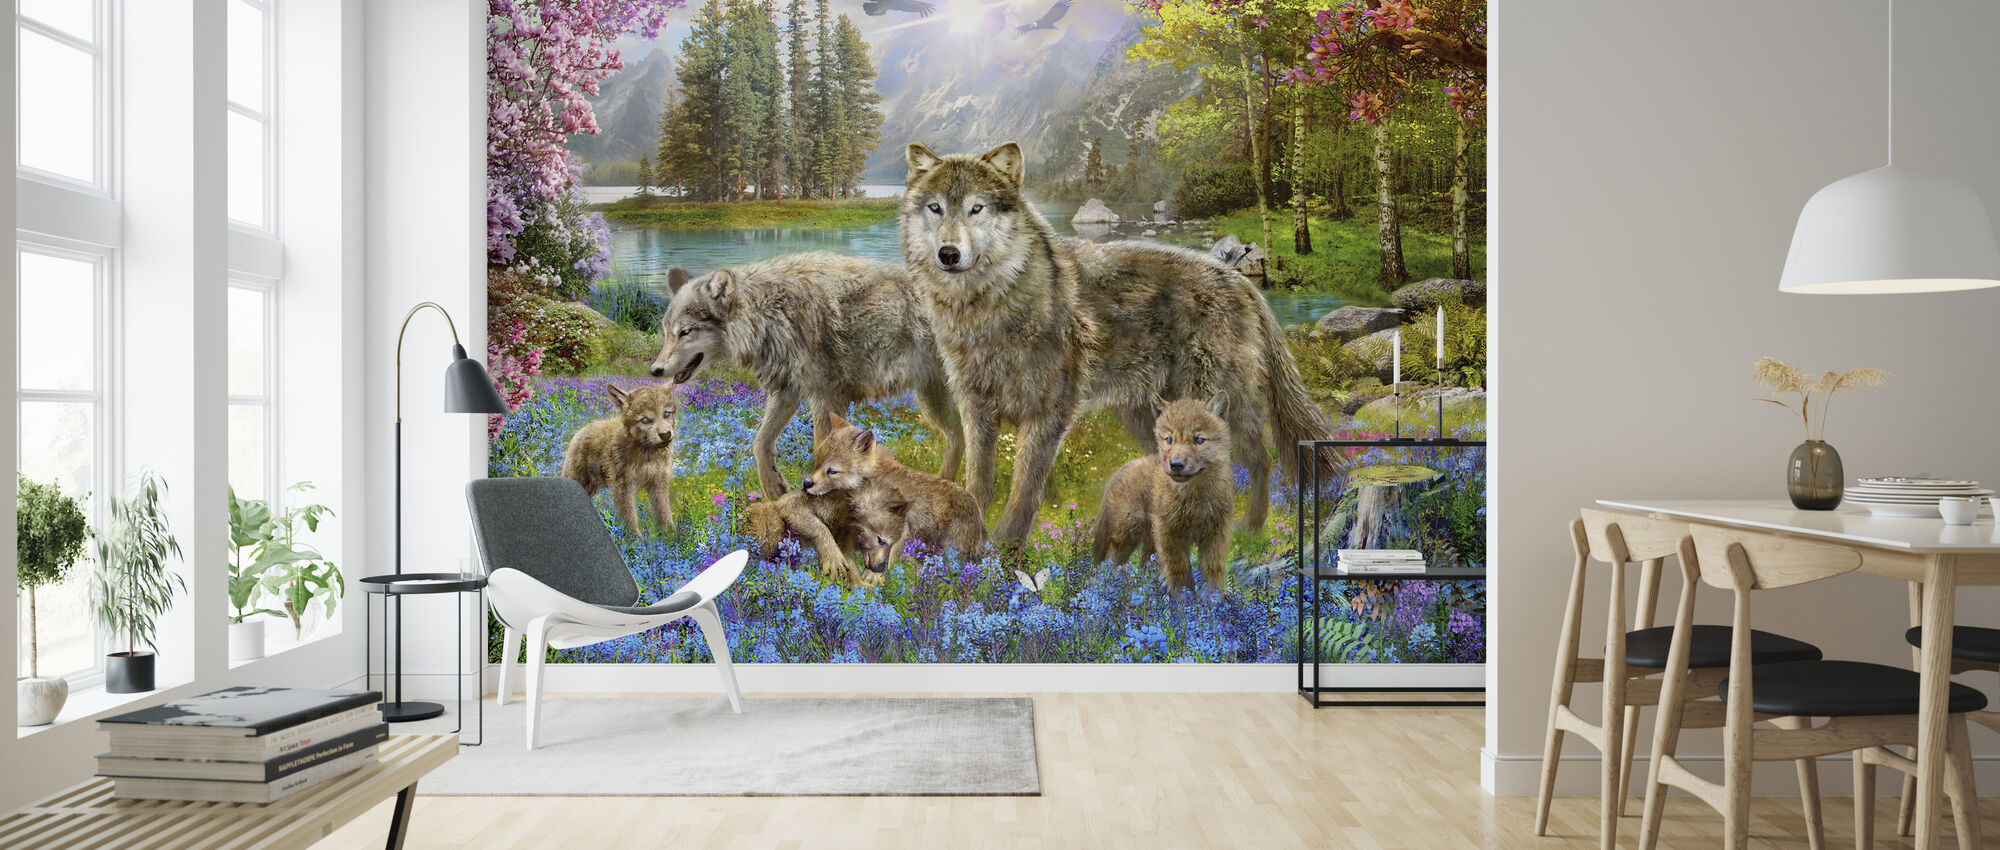 Spring Wolf Family - Wallpaper - Living Room